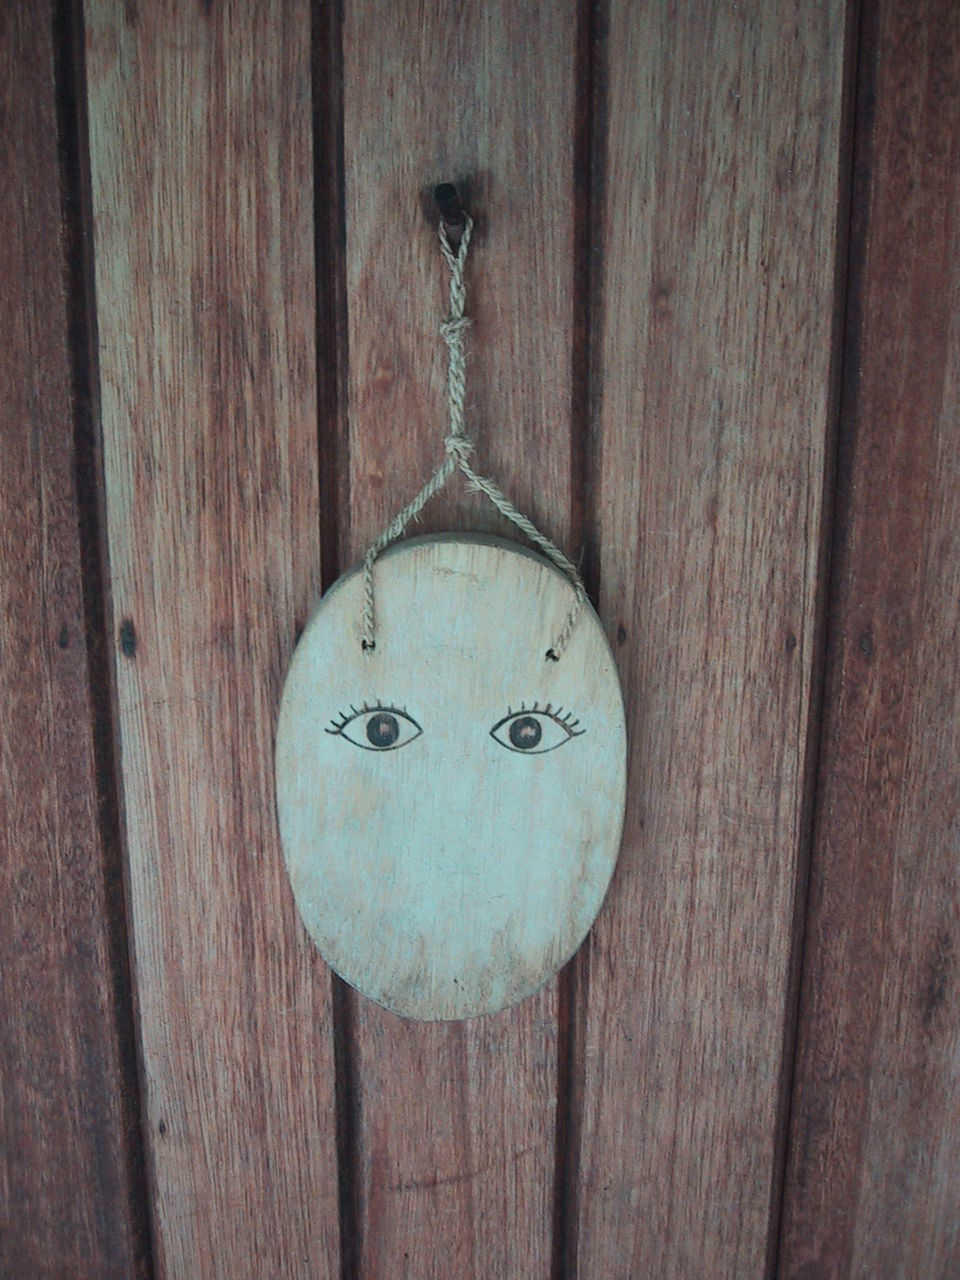 hanging, wood - material, no people, door, day, close-up, outdoors